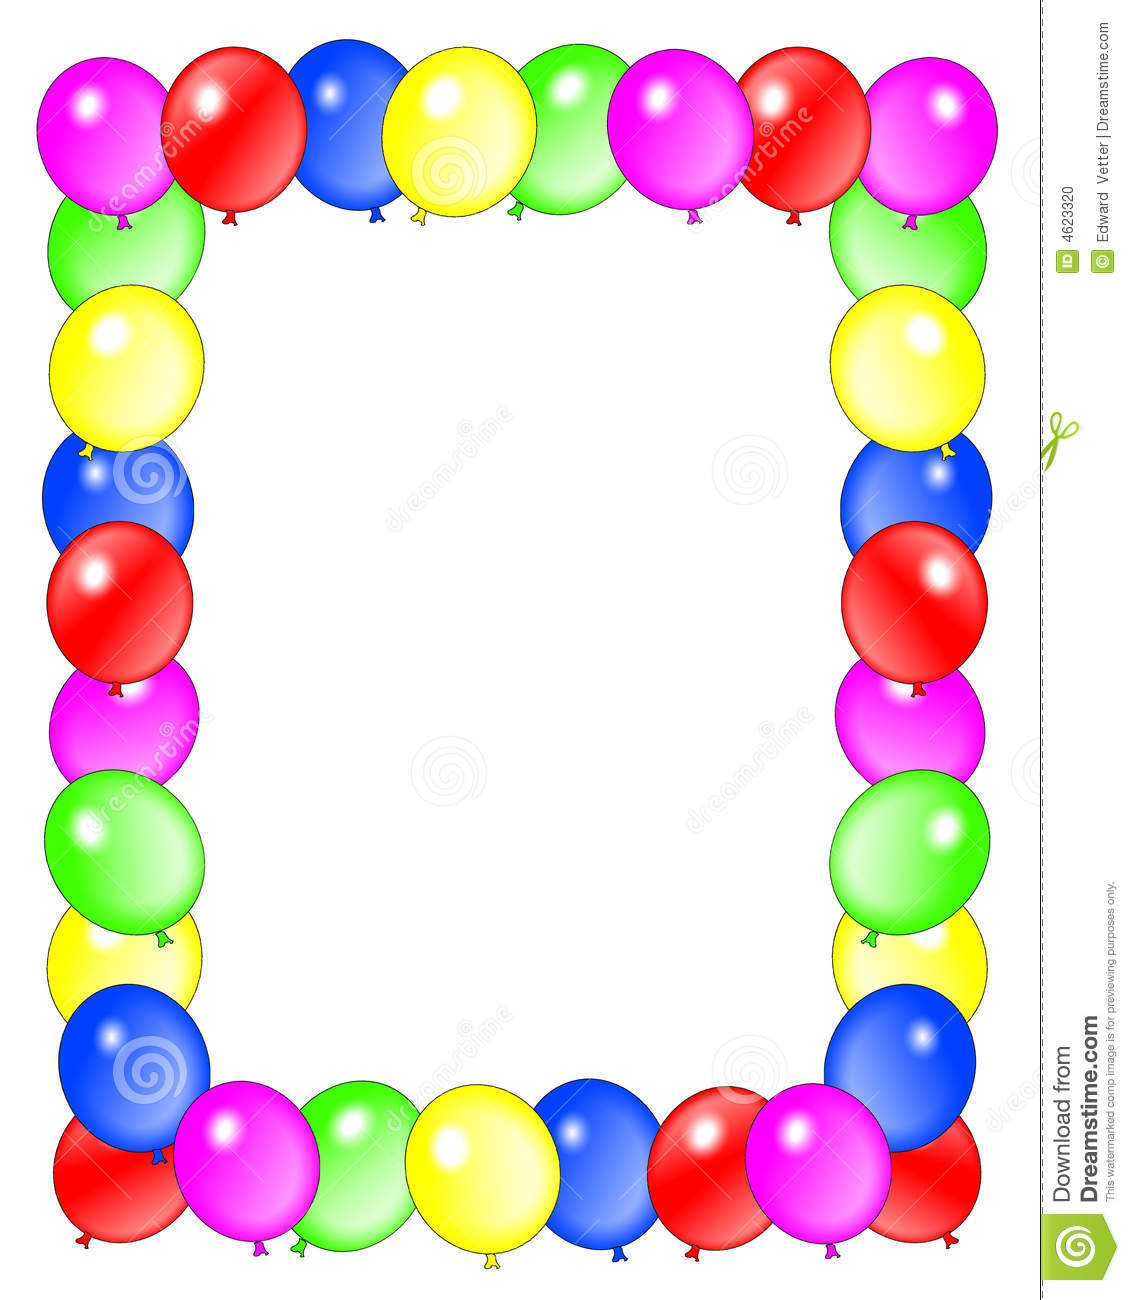 Free Printable Birthday Clipart at GetDrawings.com   Free for ...